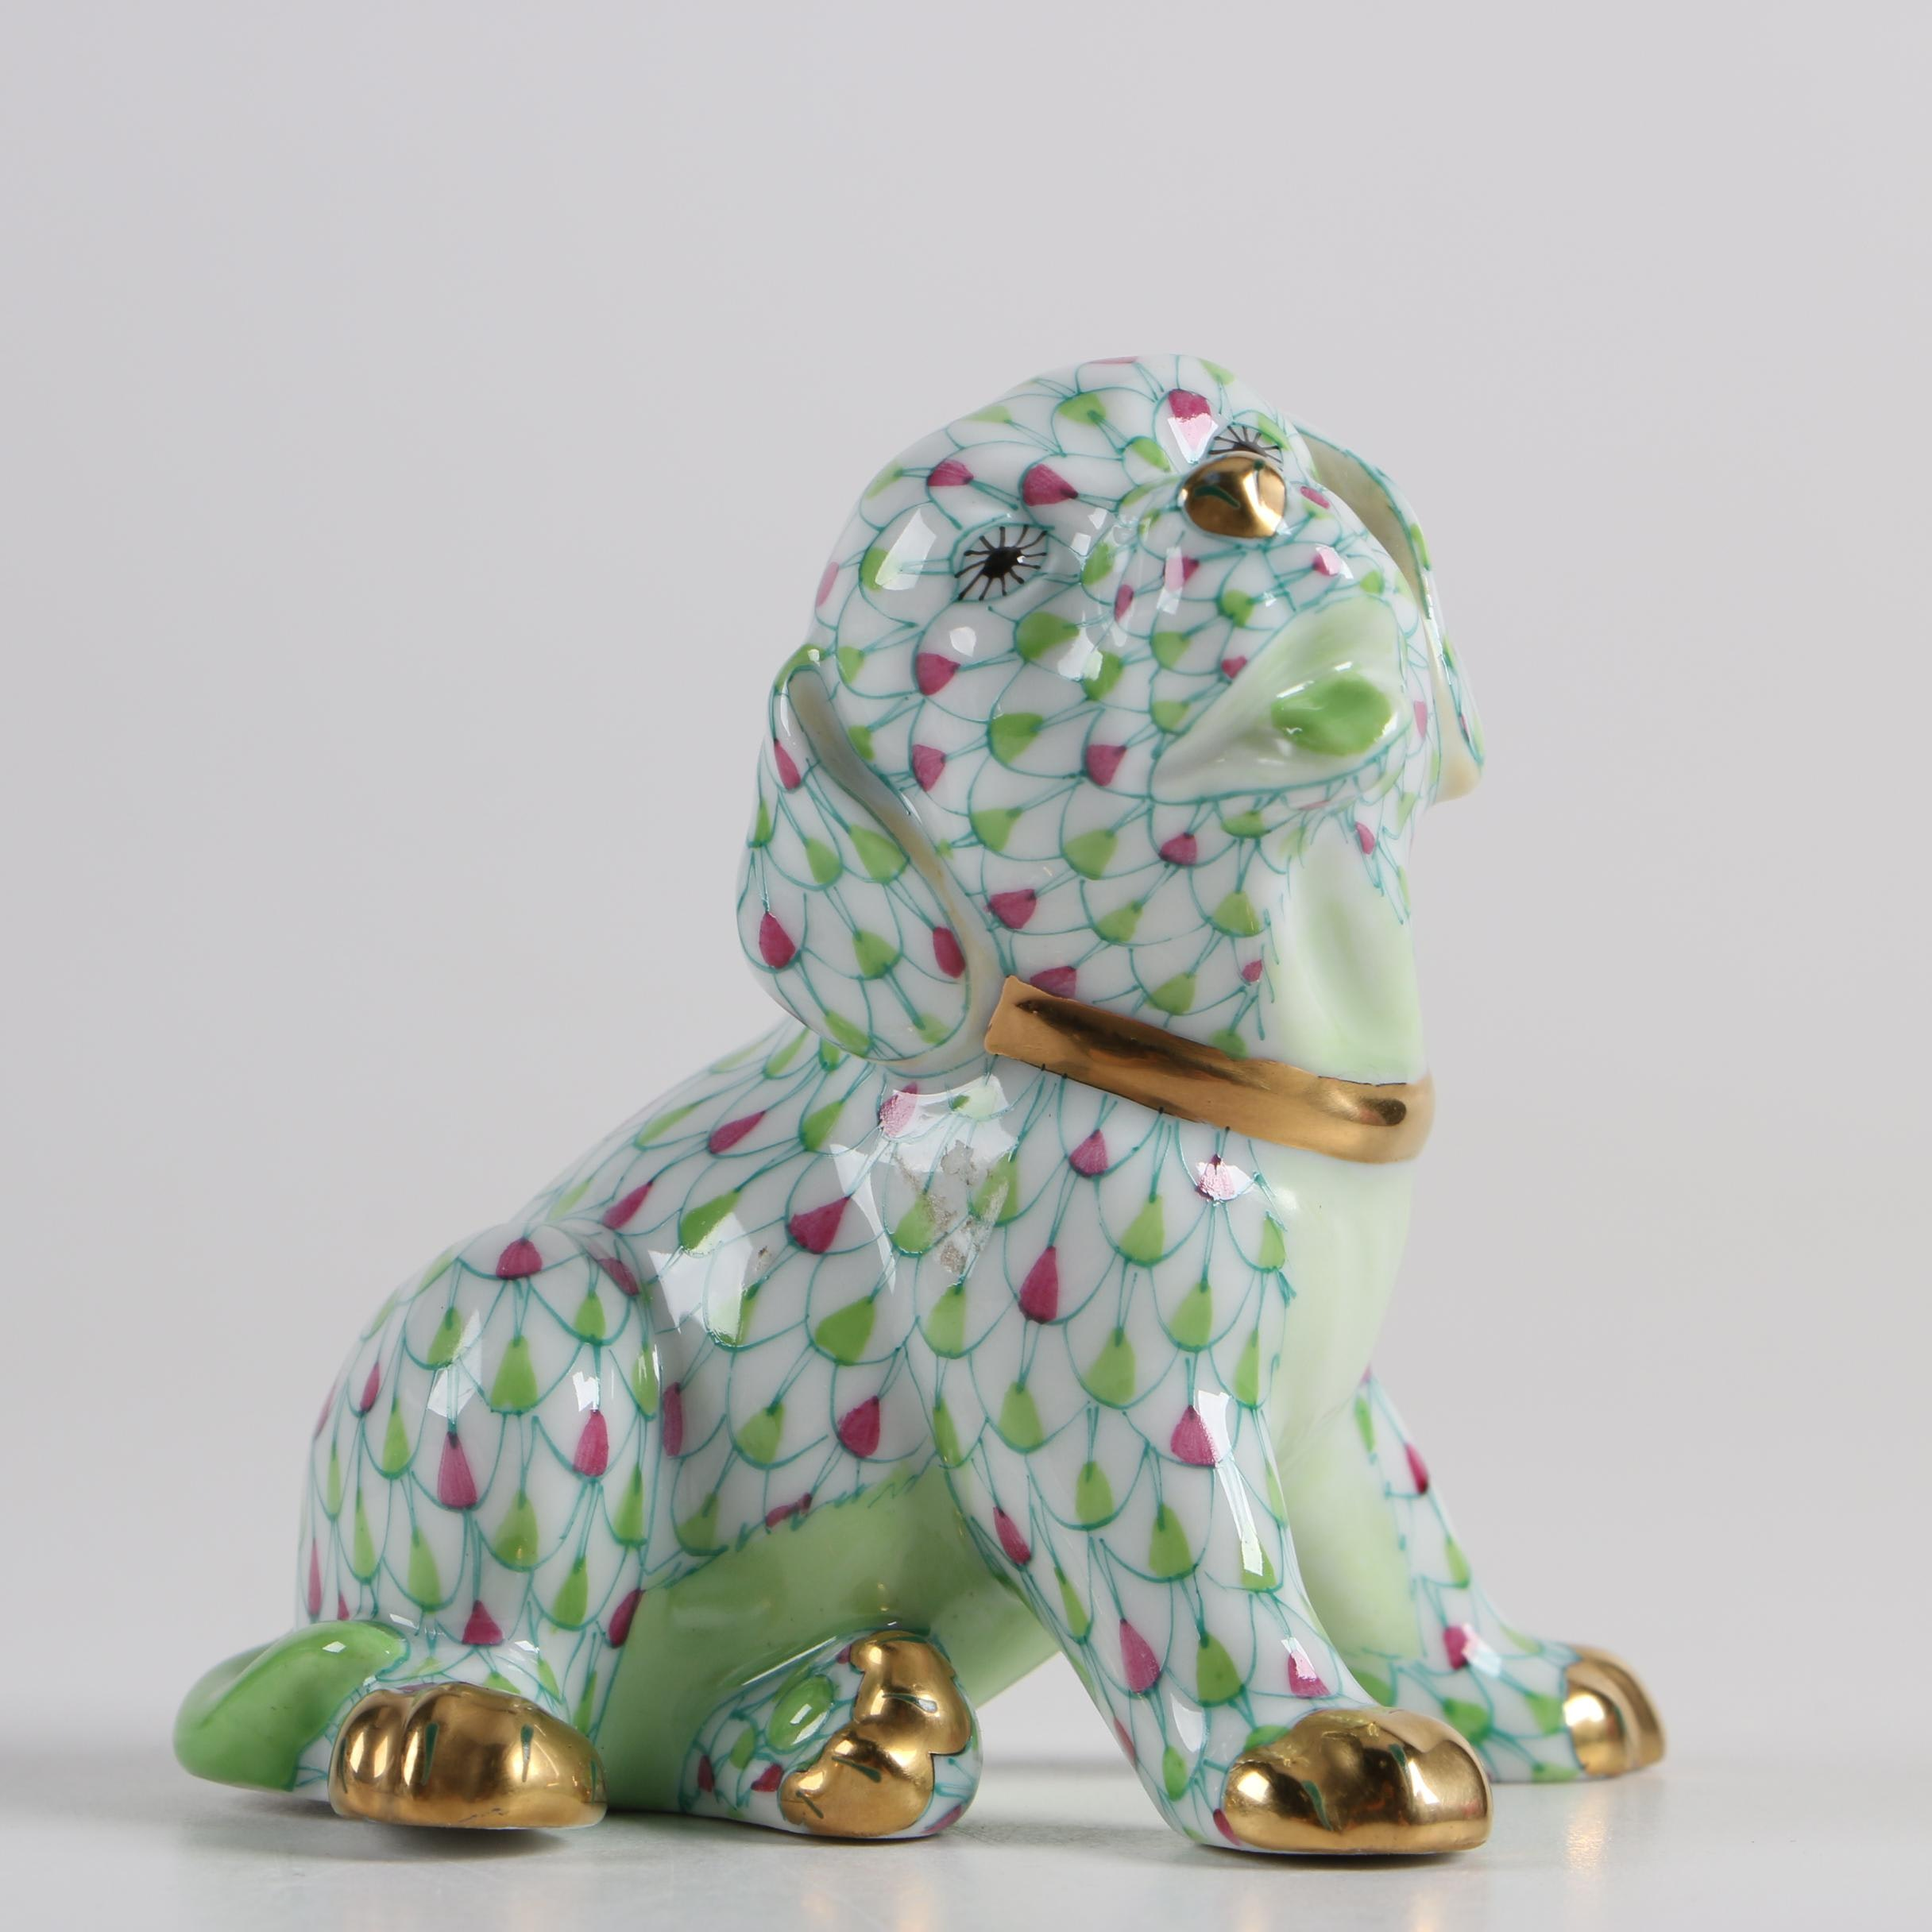 Herend Porcelain Hand-Painted Puppy Figurine